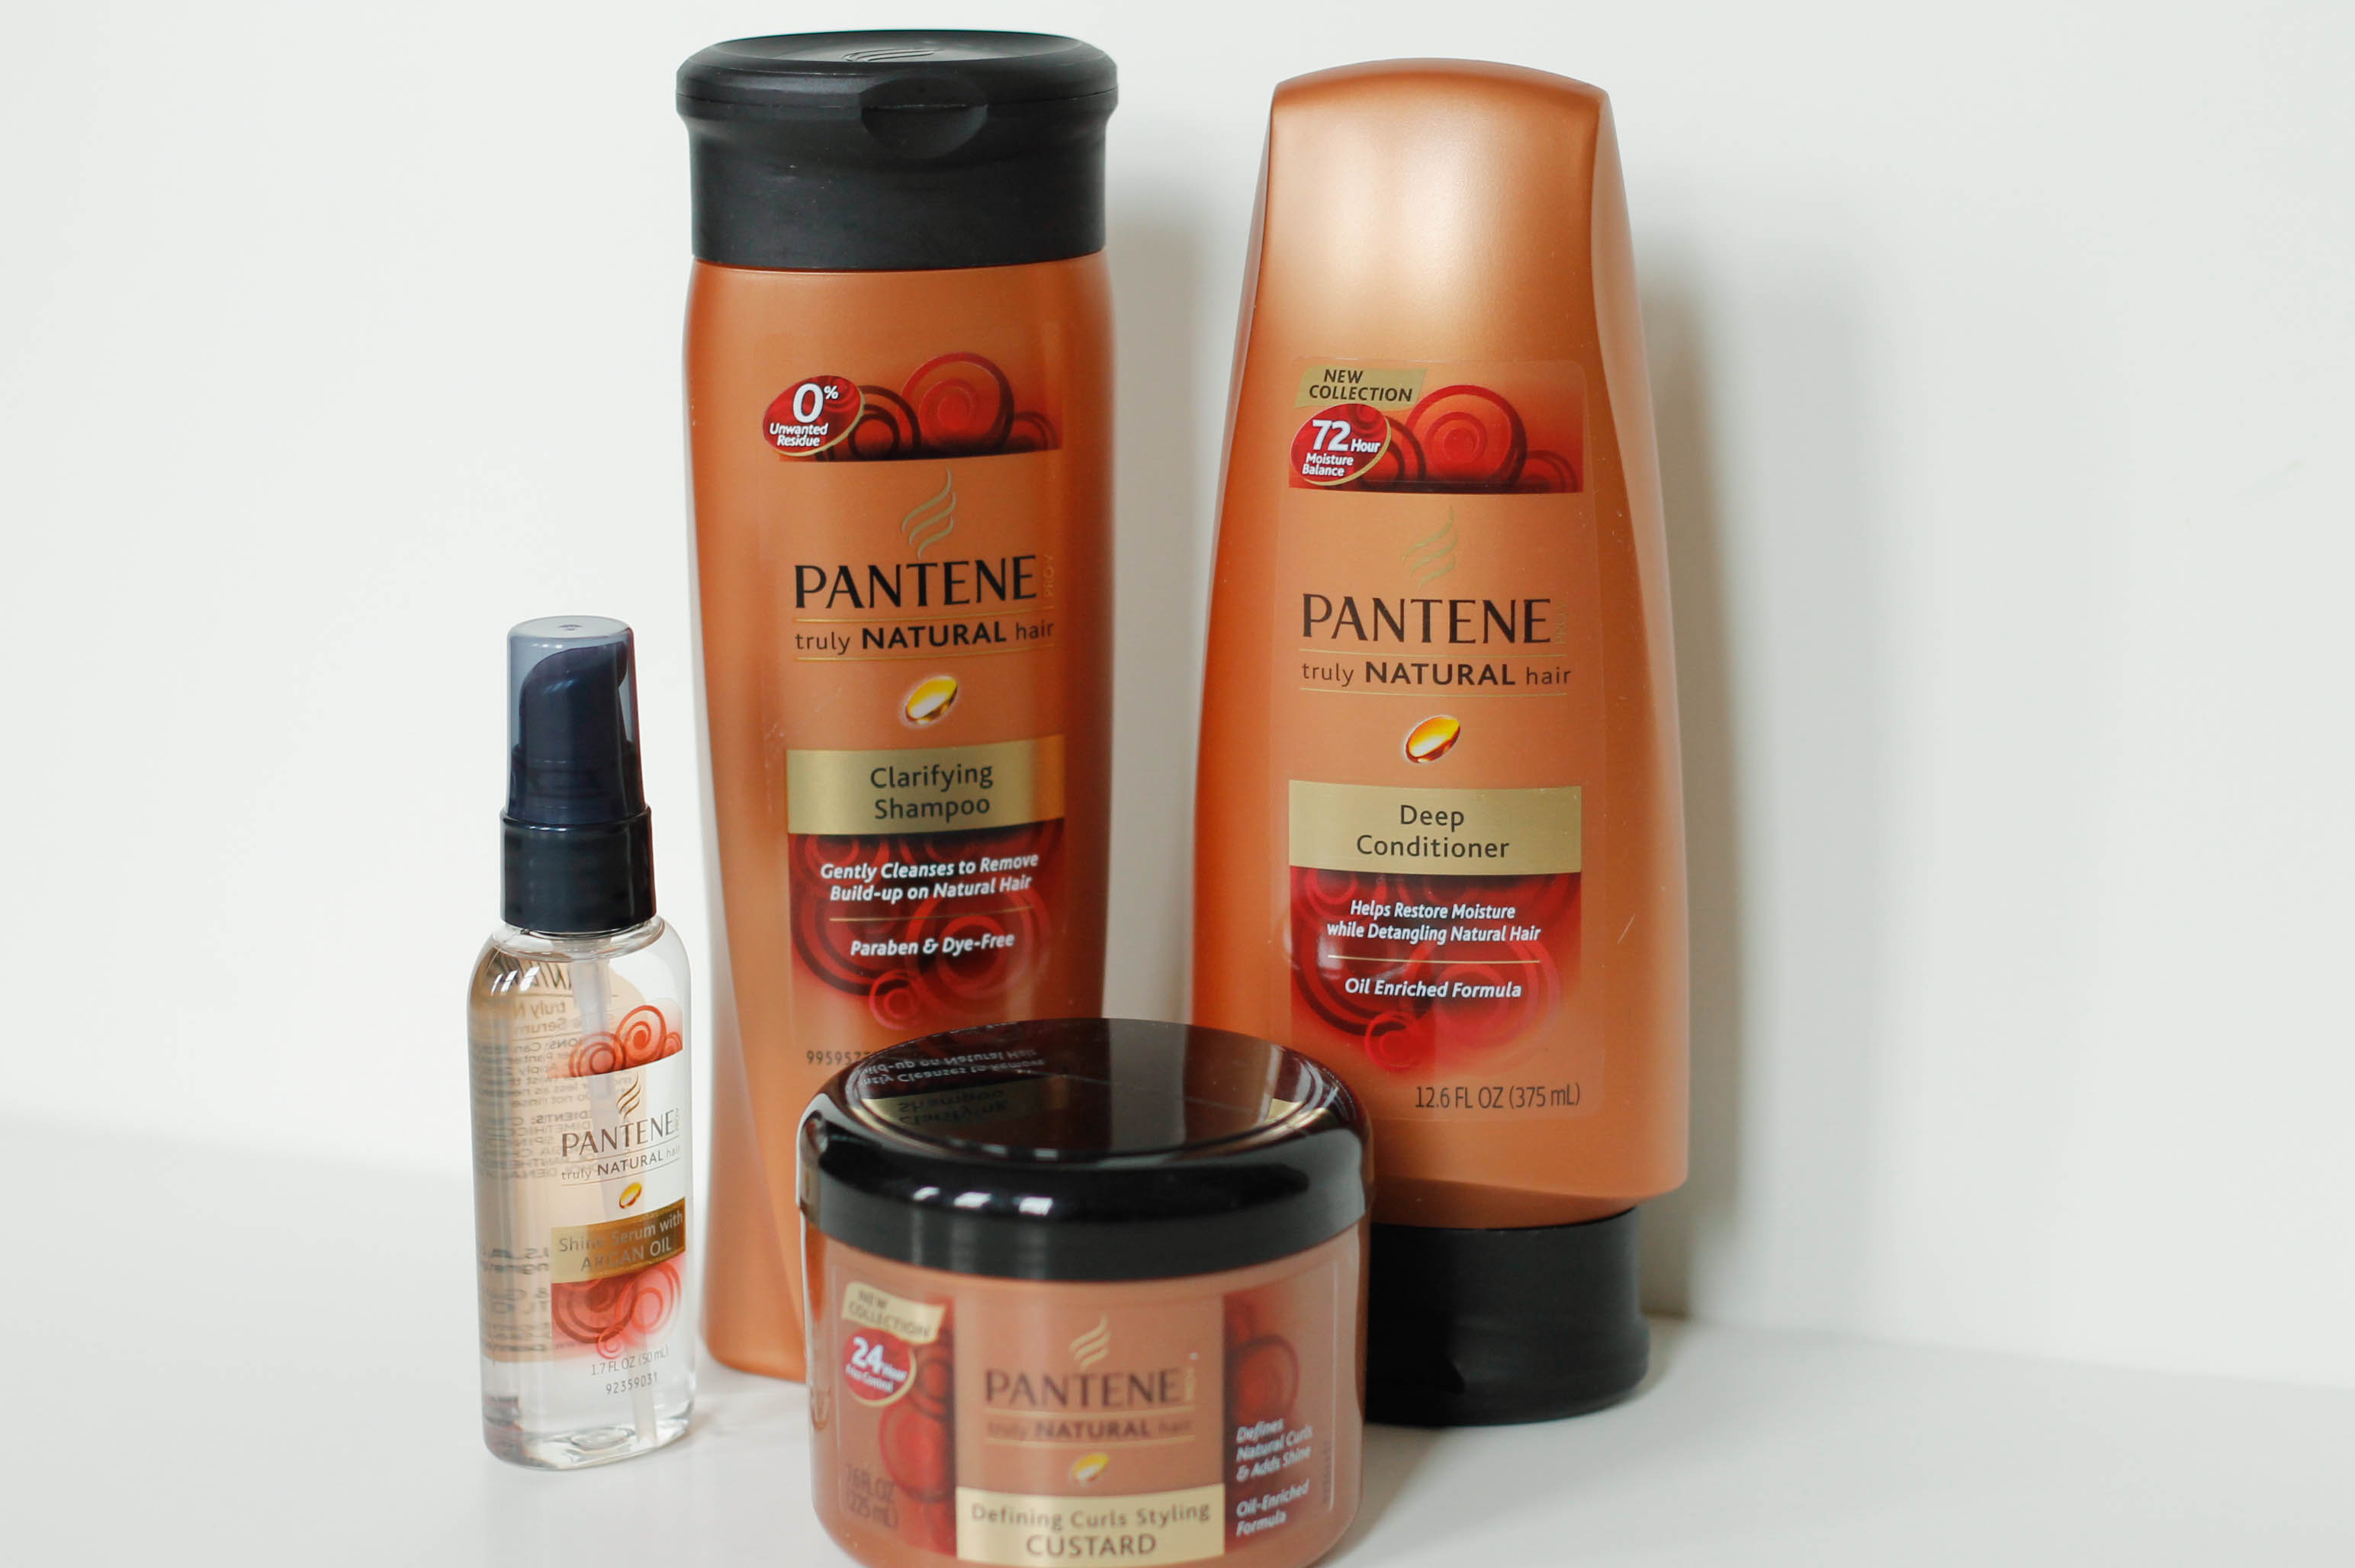 Pantene Natural Hair Products Review